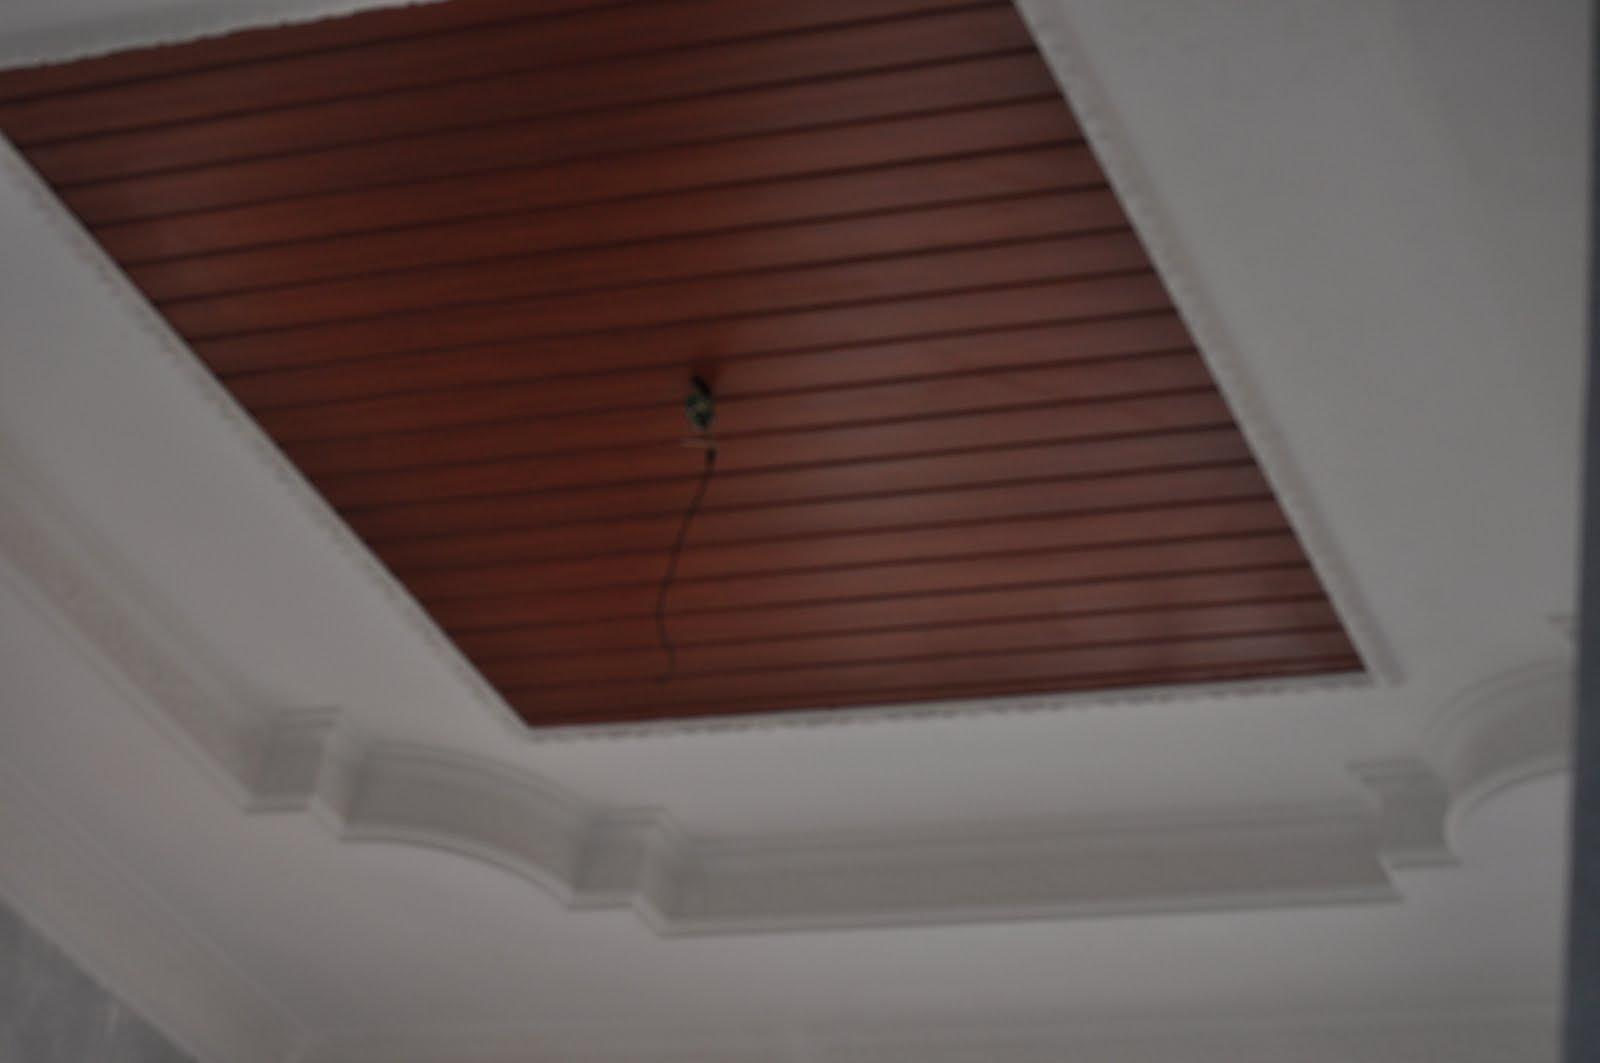 DOUBLE H PLASTER CEILING: siling kapur + ct wood